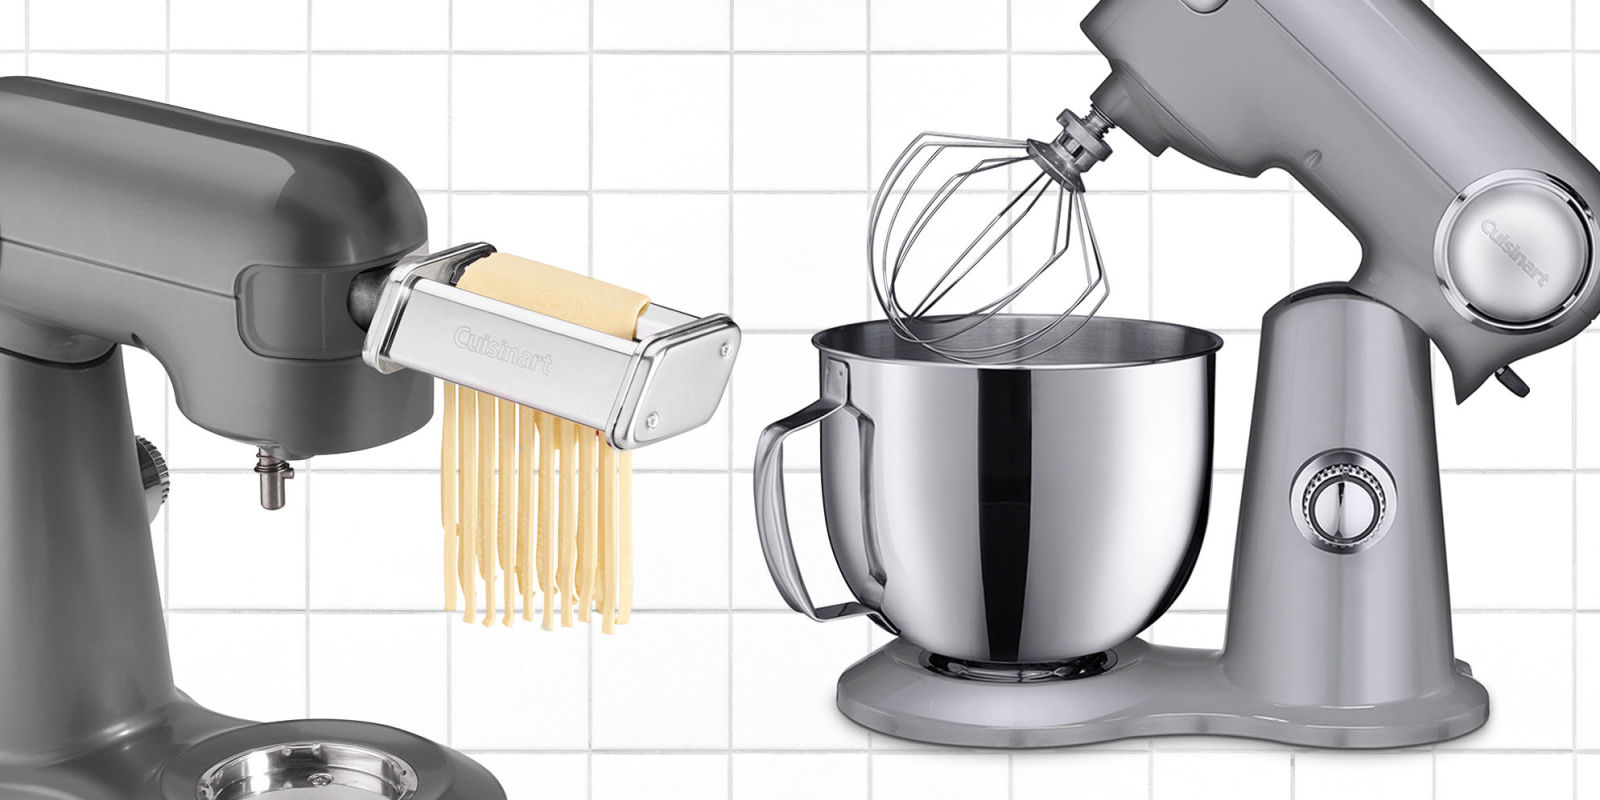 Uncategorized Kitchen Appliance Sweepstakes 2017 sweepstakes and giveaways on bestproducts com best products cuisinart stand mixer pasta attachment giveaway kitchen gadgetscookware